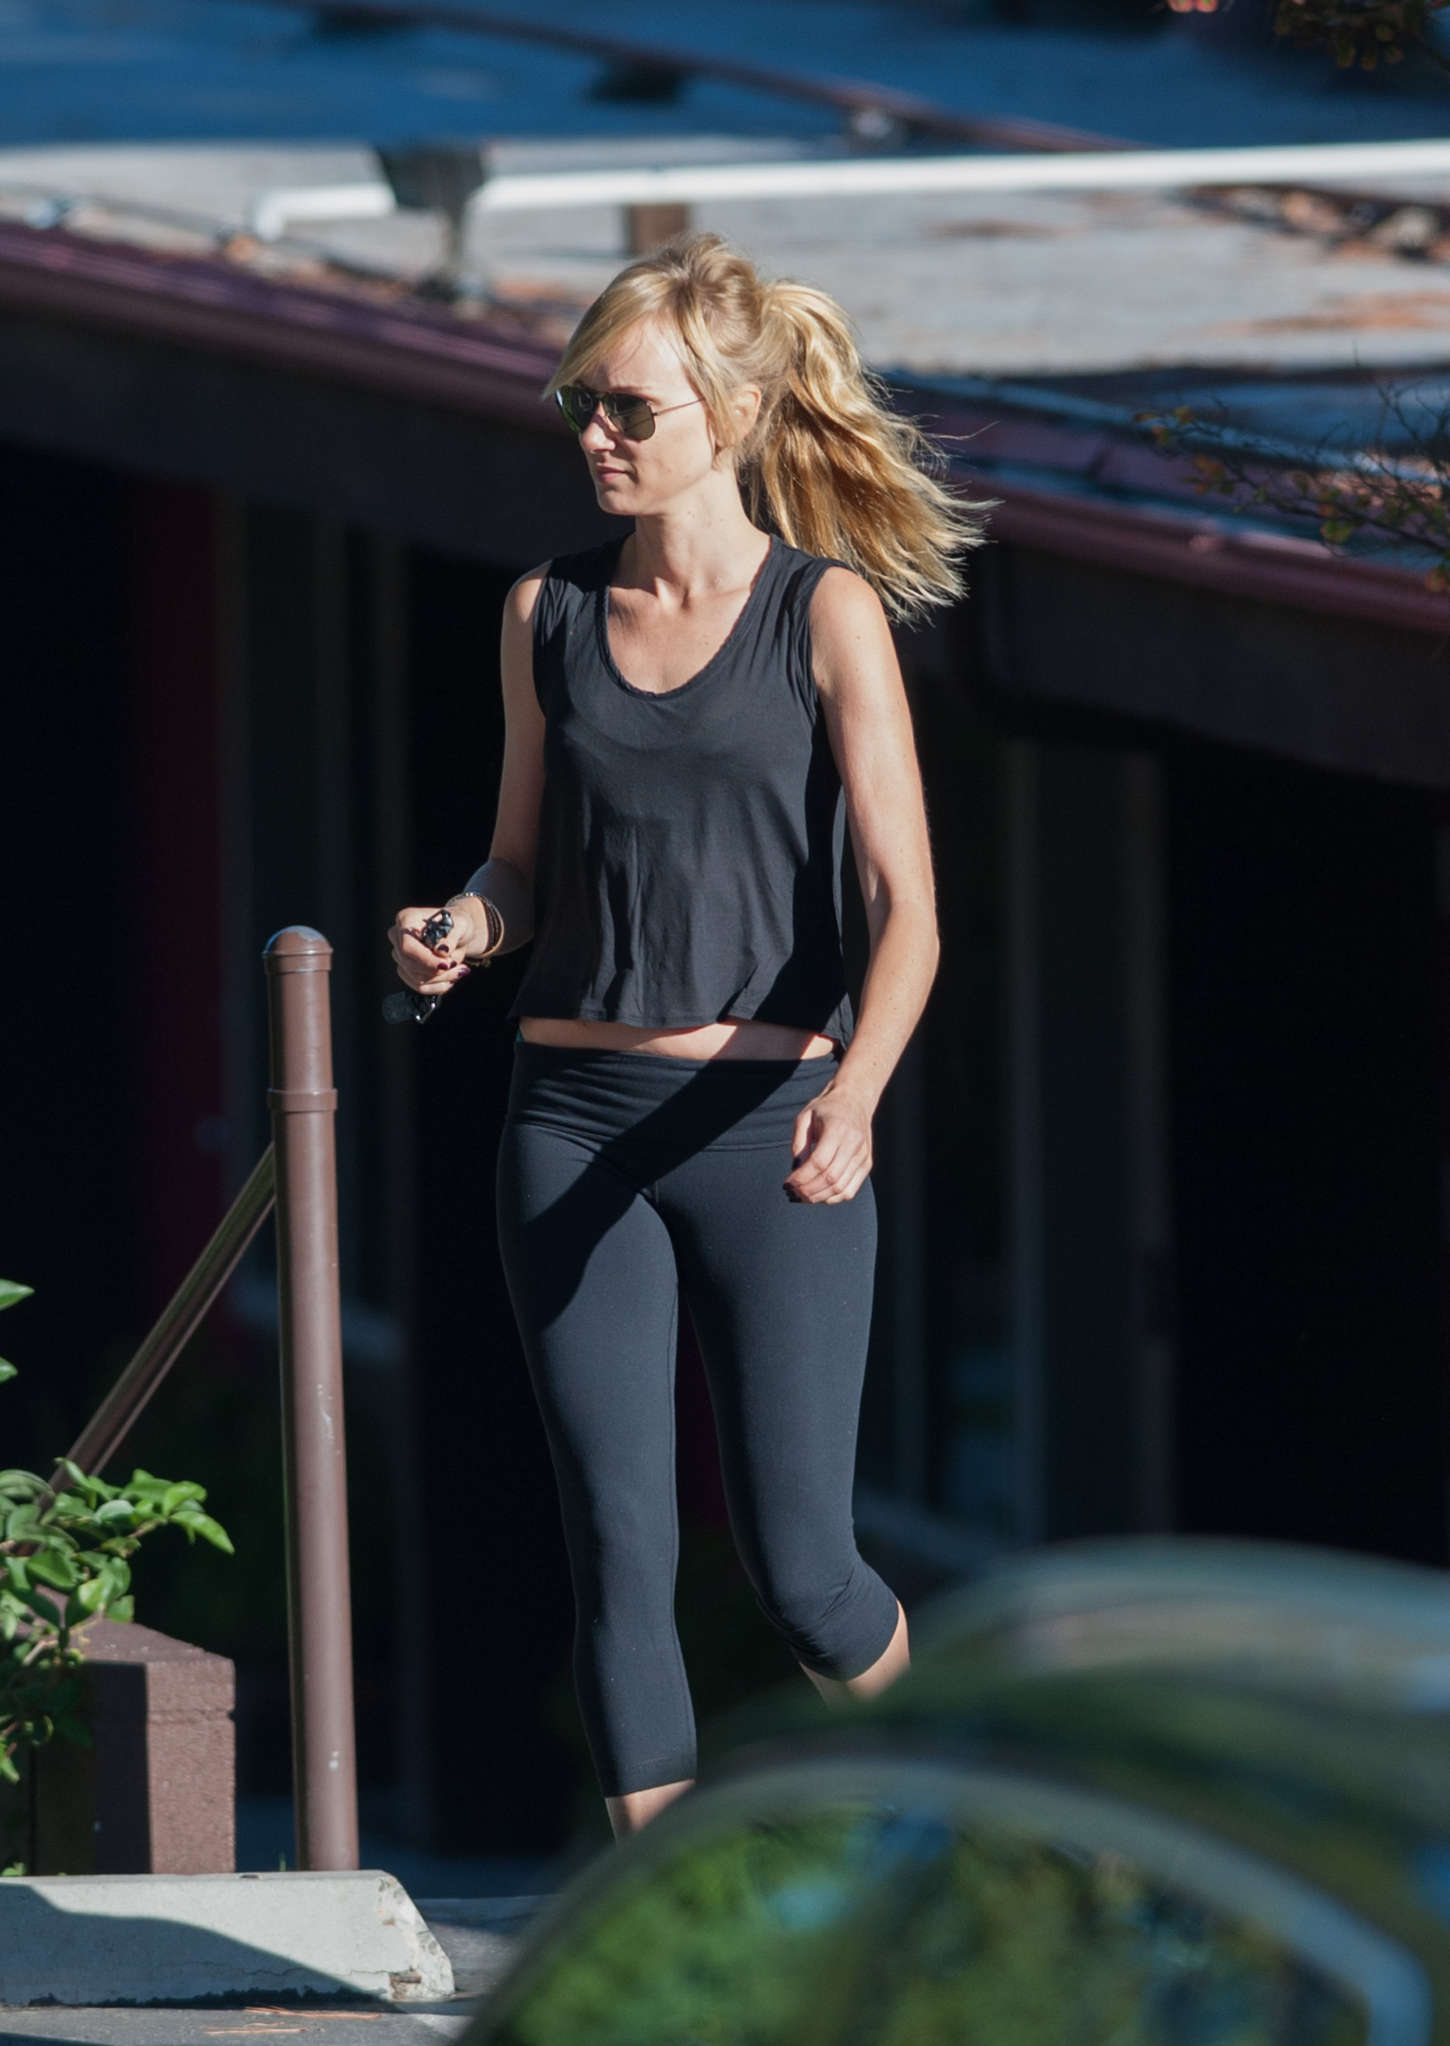 kimberly stewart in tights -10